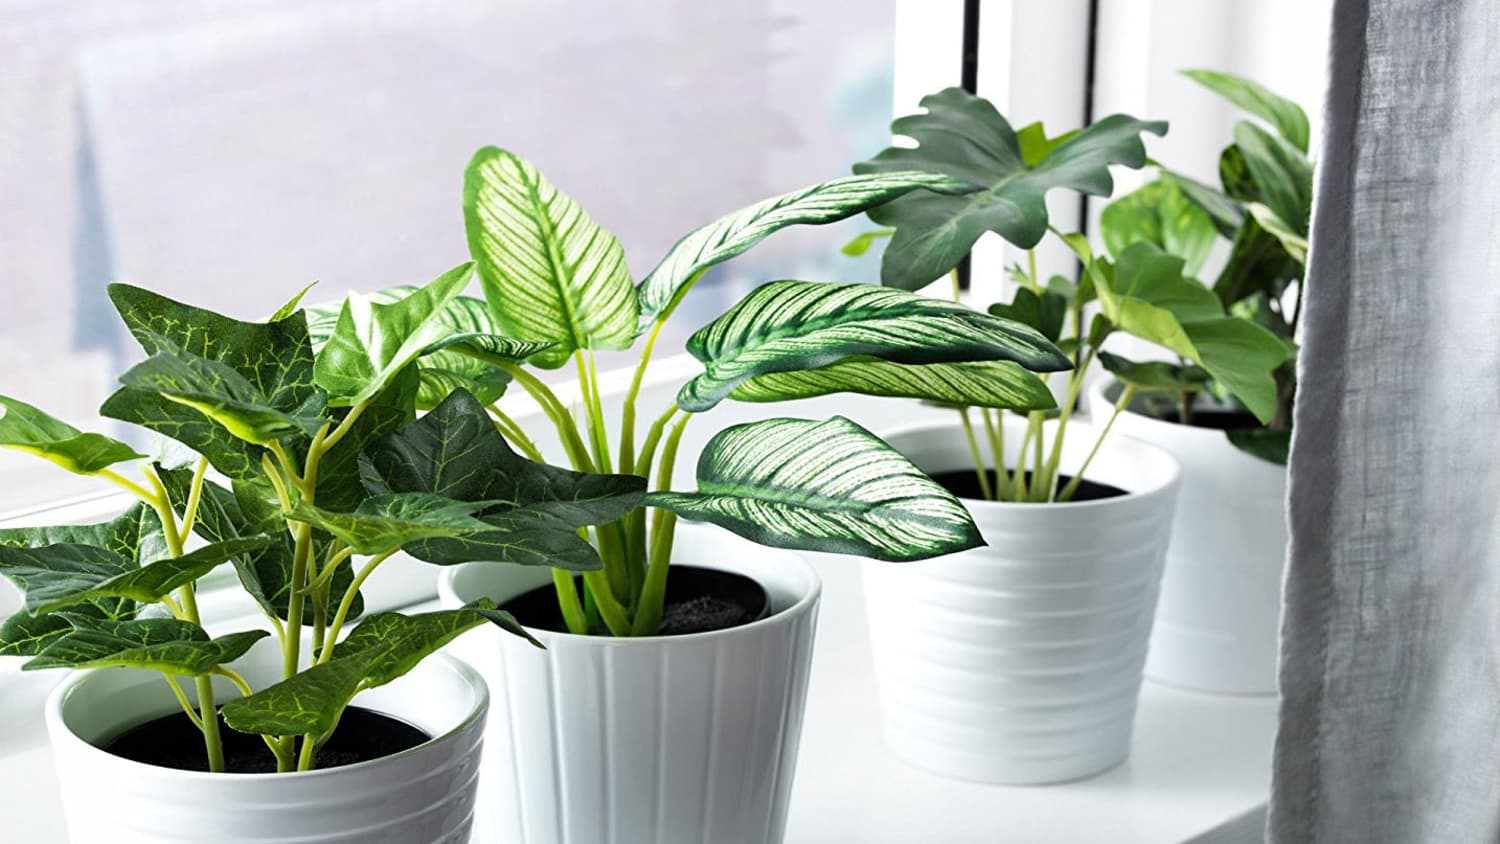 Fake Plant Buying Guide How To Pick The Best Faux Plants Apartment Therapy Find over 100+ of the best free tropical leaves images. how to pick the best faux plants